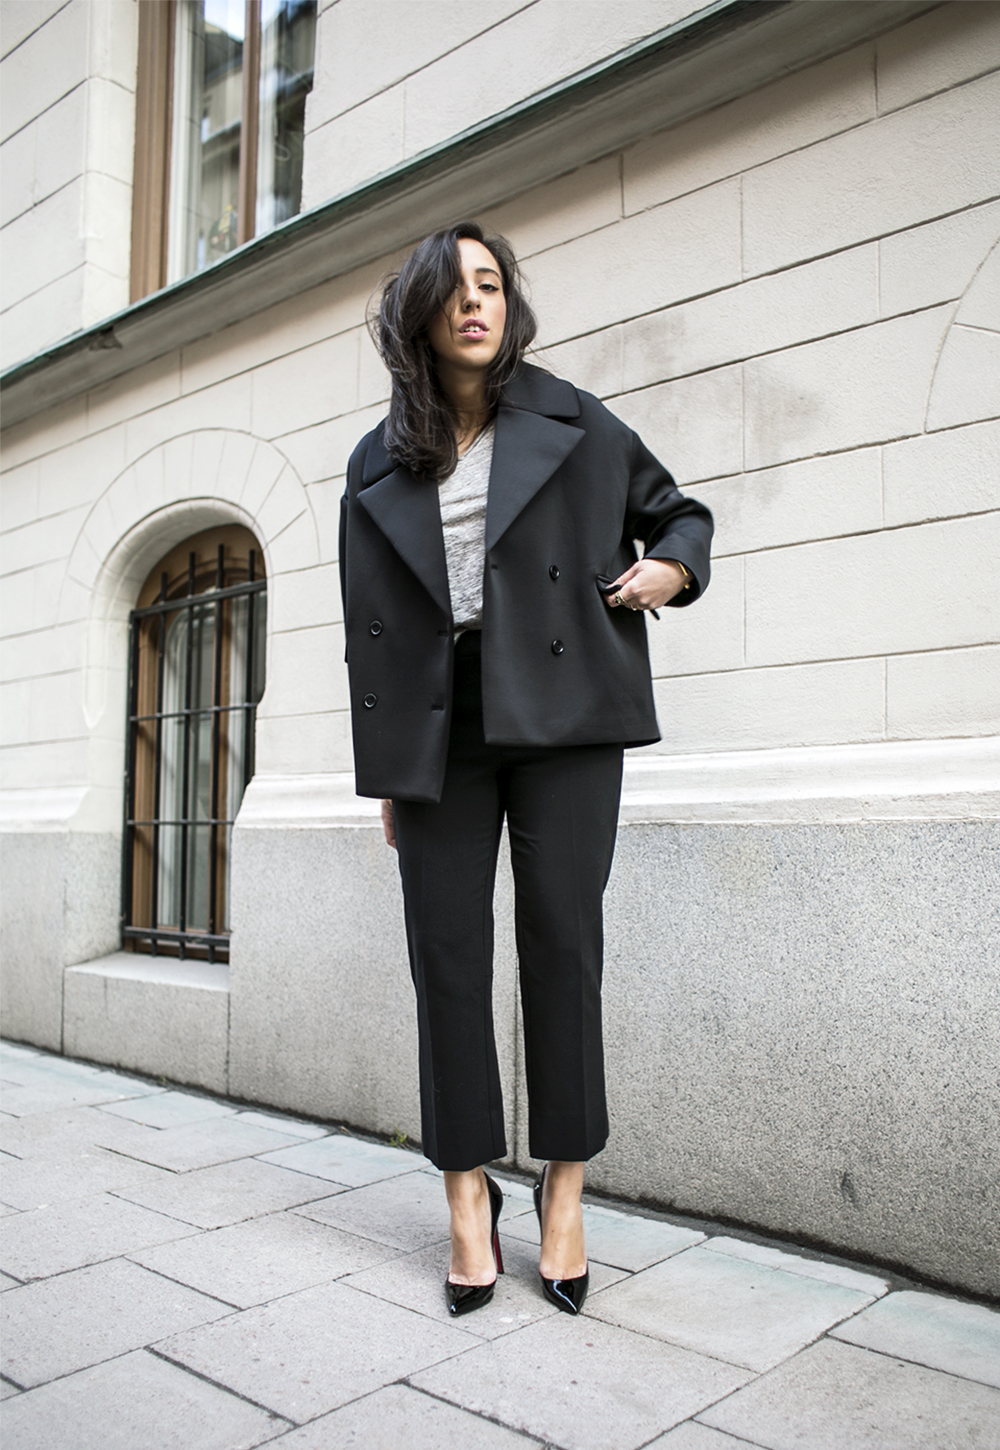 sania claus demina outfit lindex trousers christian louboubtin shoes weekday jacket by malebe birger tshirt_2